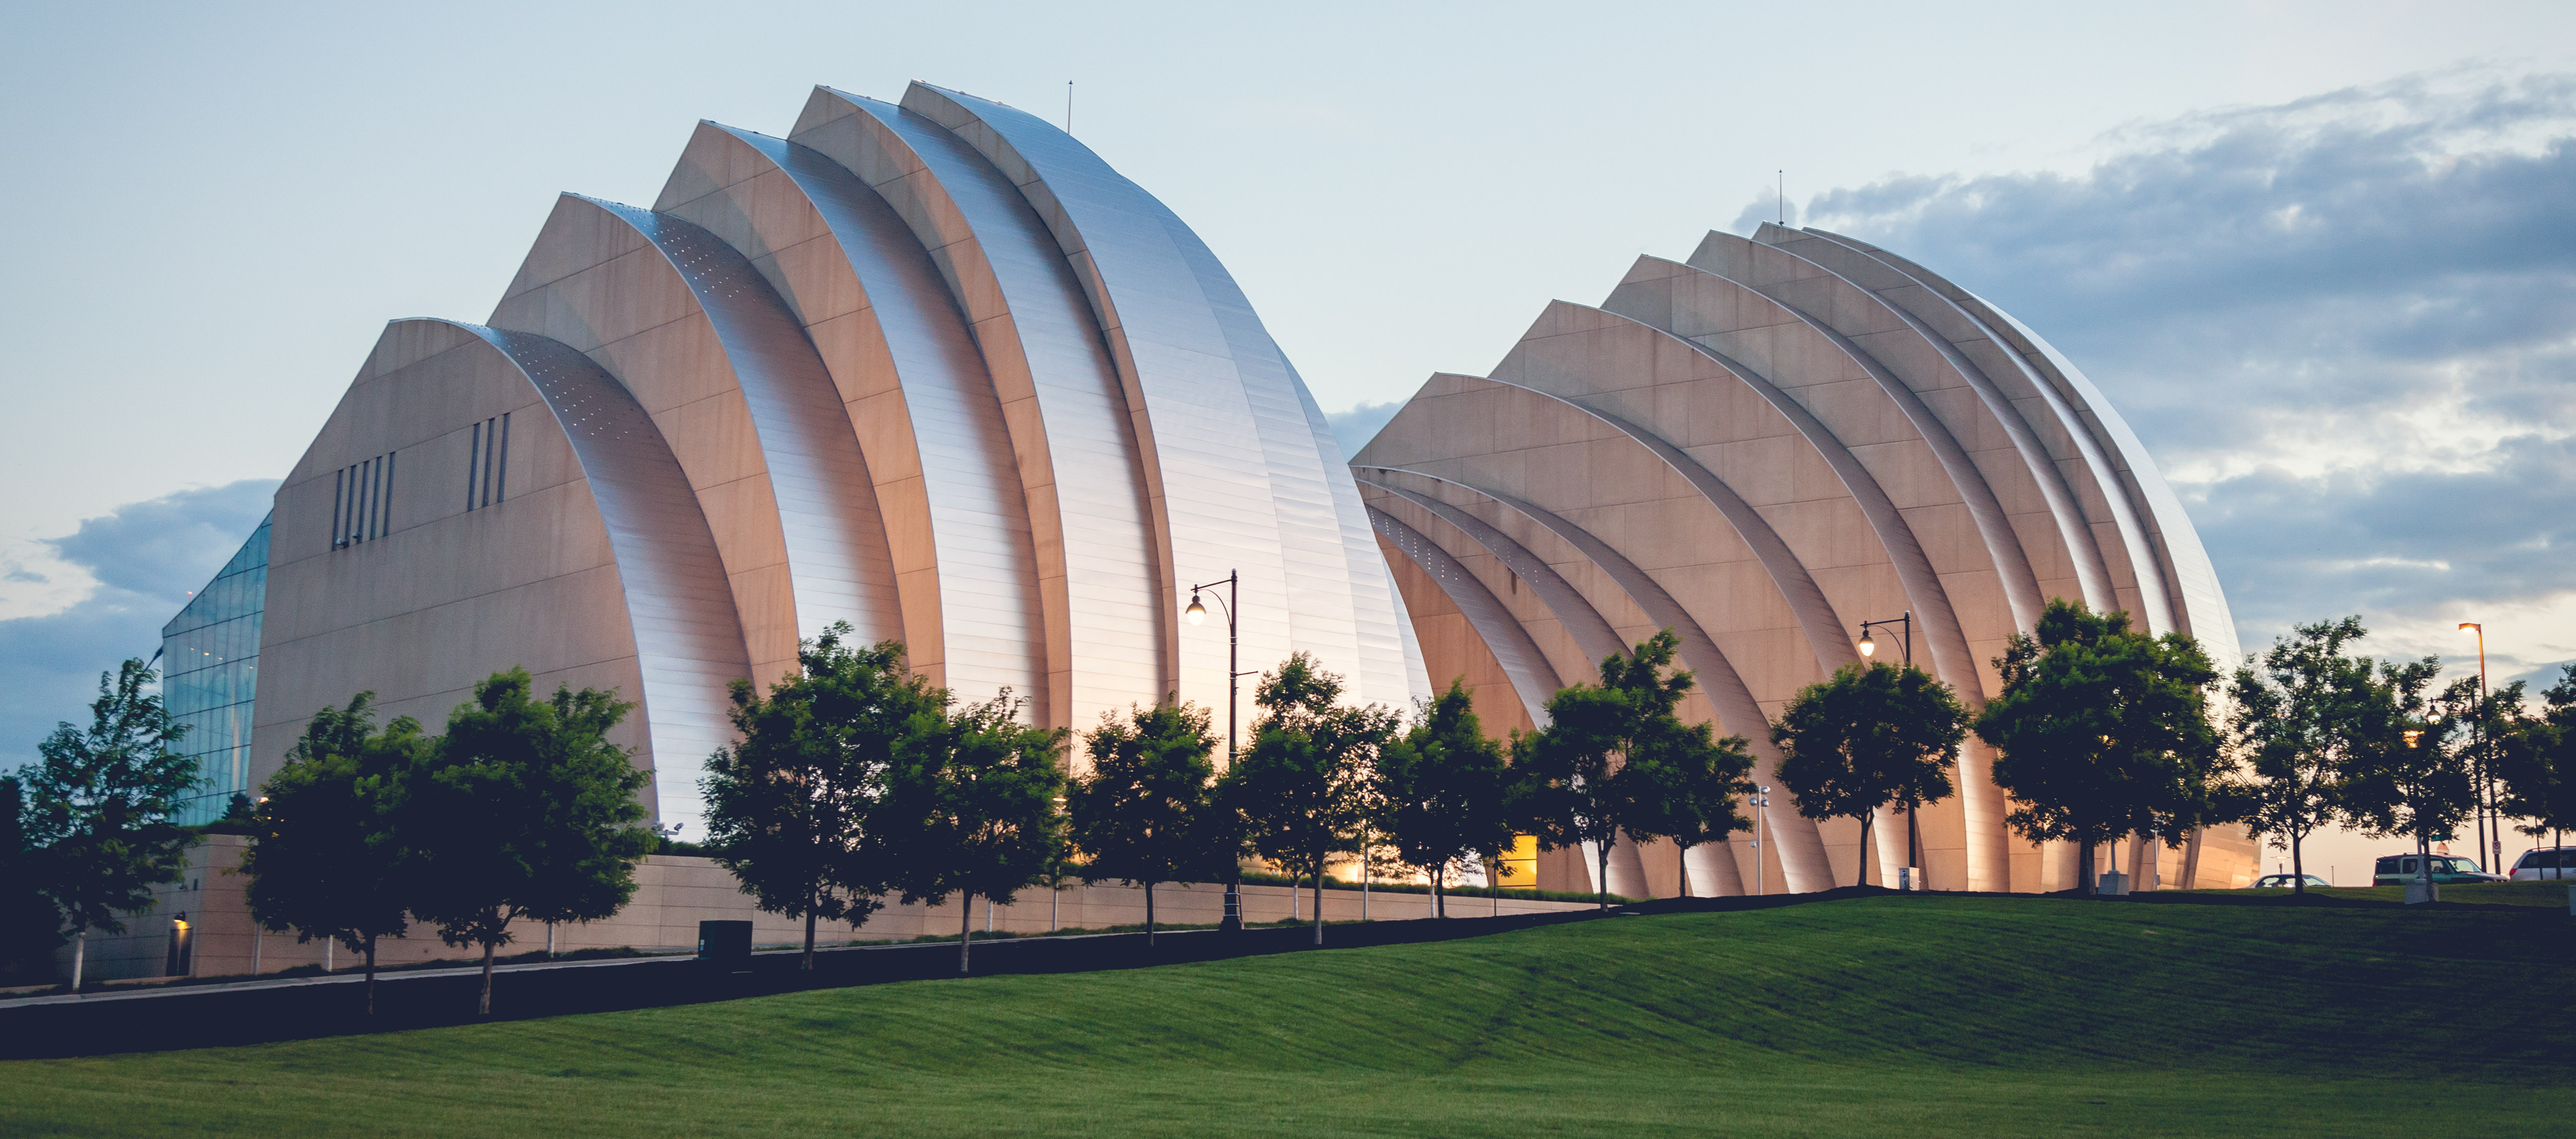 A photograph of the Kauffman Center for the Performing Arts, in Kansas City, Missouri.